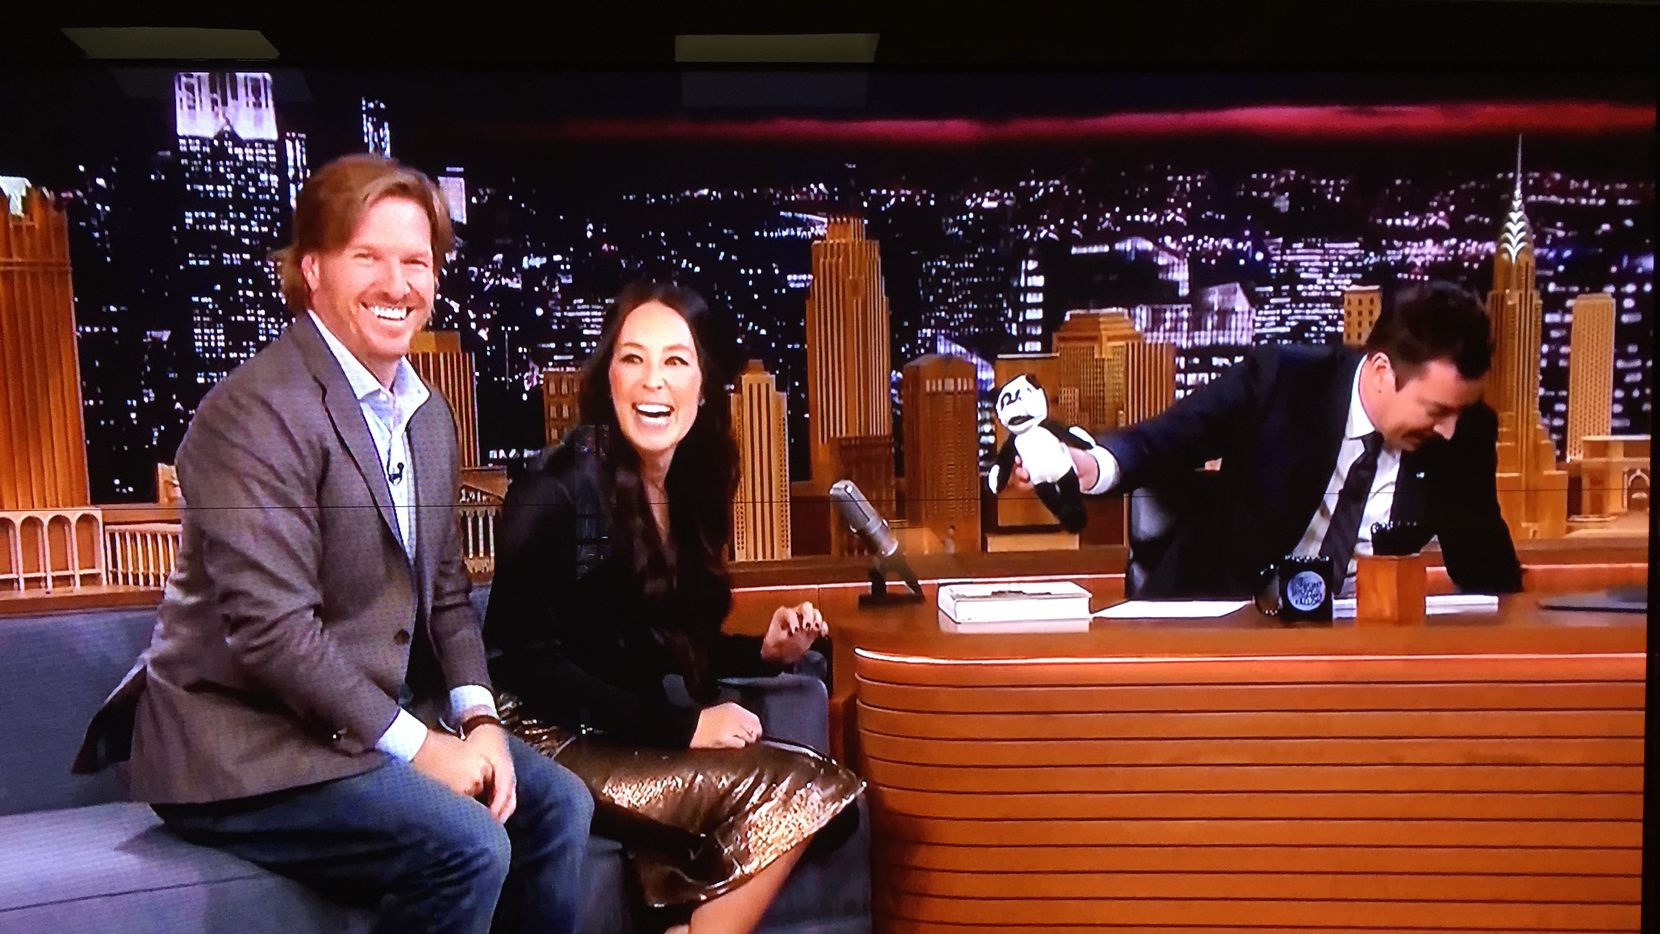 Chip and Joanna Gaines appeared on The Tonight Show with Jimmy Fallon on Friday, Nov. 9, 2018.